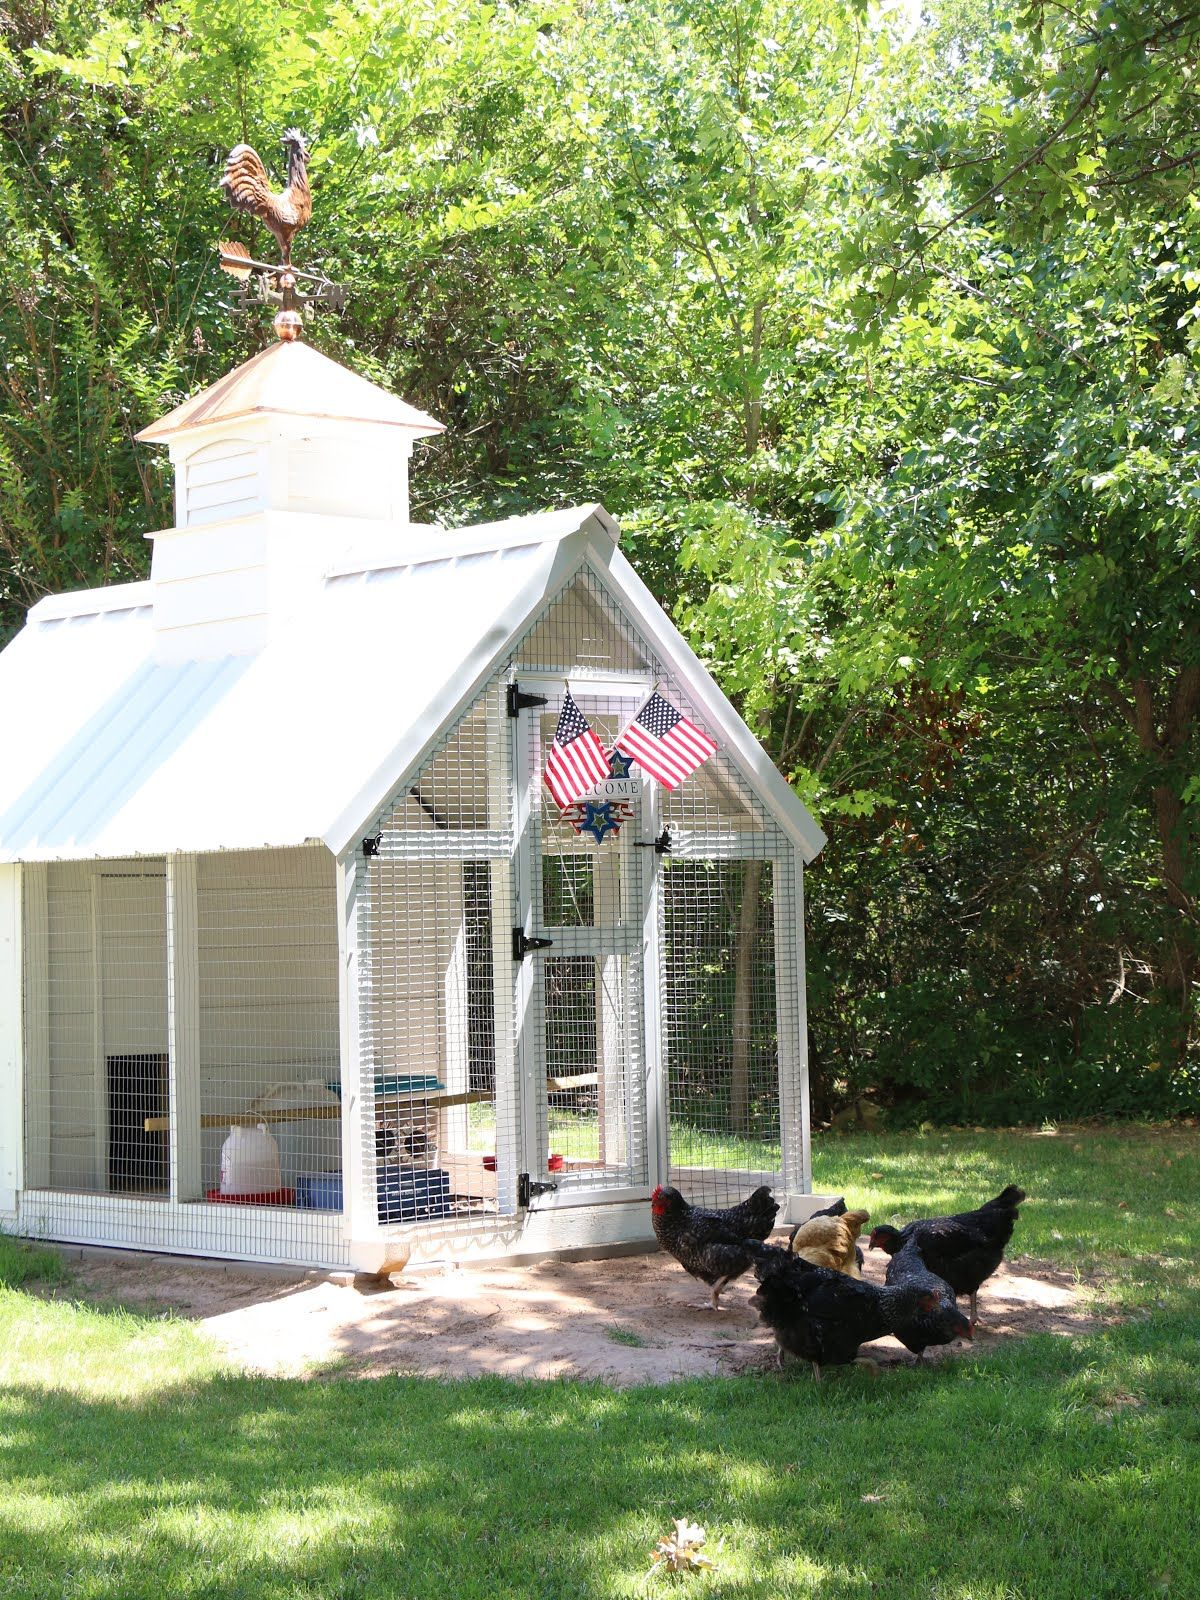 851ccef905ff038bce624671bfa77795 - Better Homes And Gardens Chicken Coop Designs